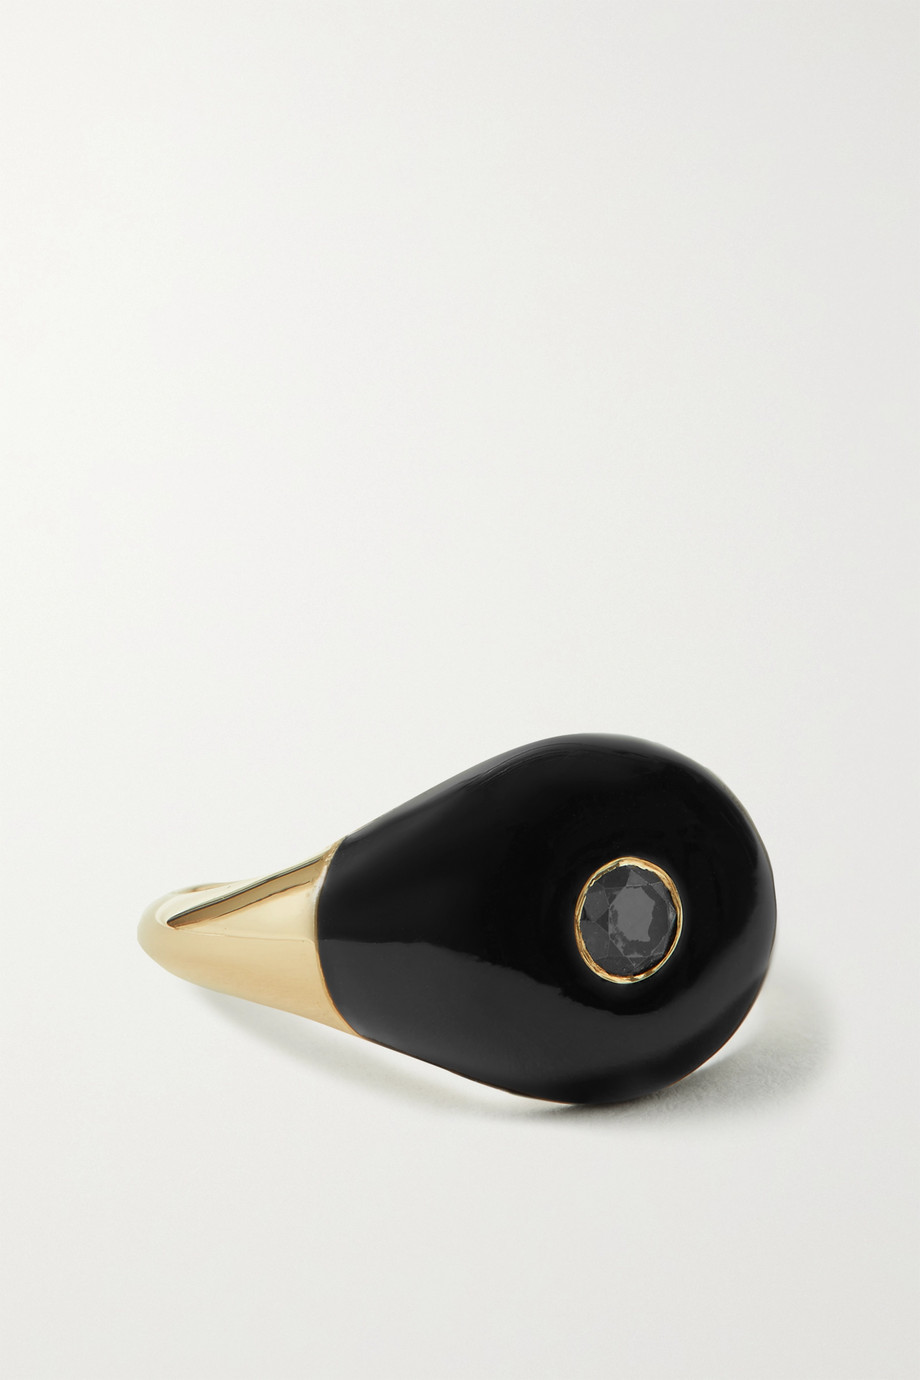 CHARMS COMPANY Les Bonbons 14-karat gold, enamel and diamond ring